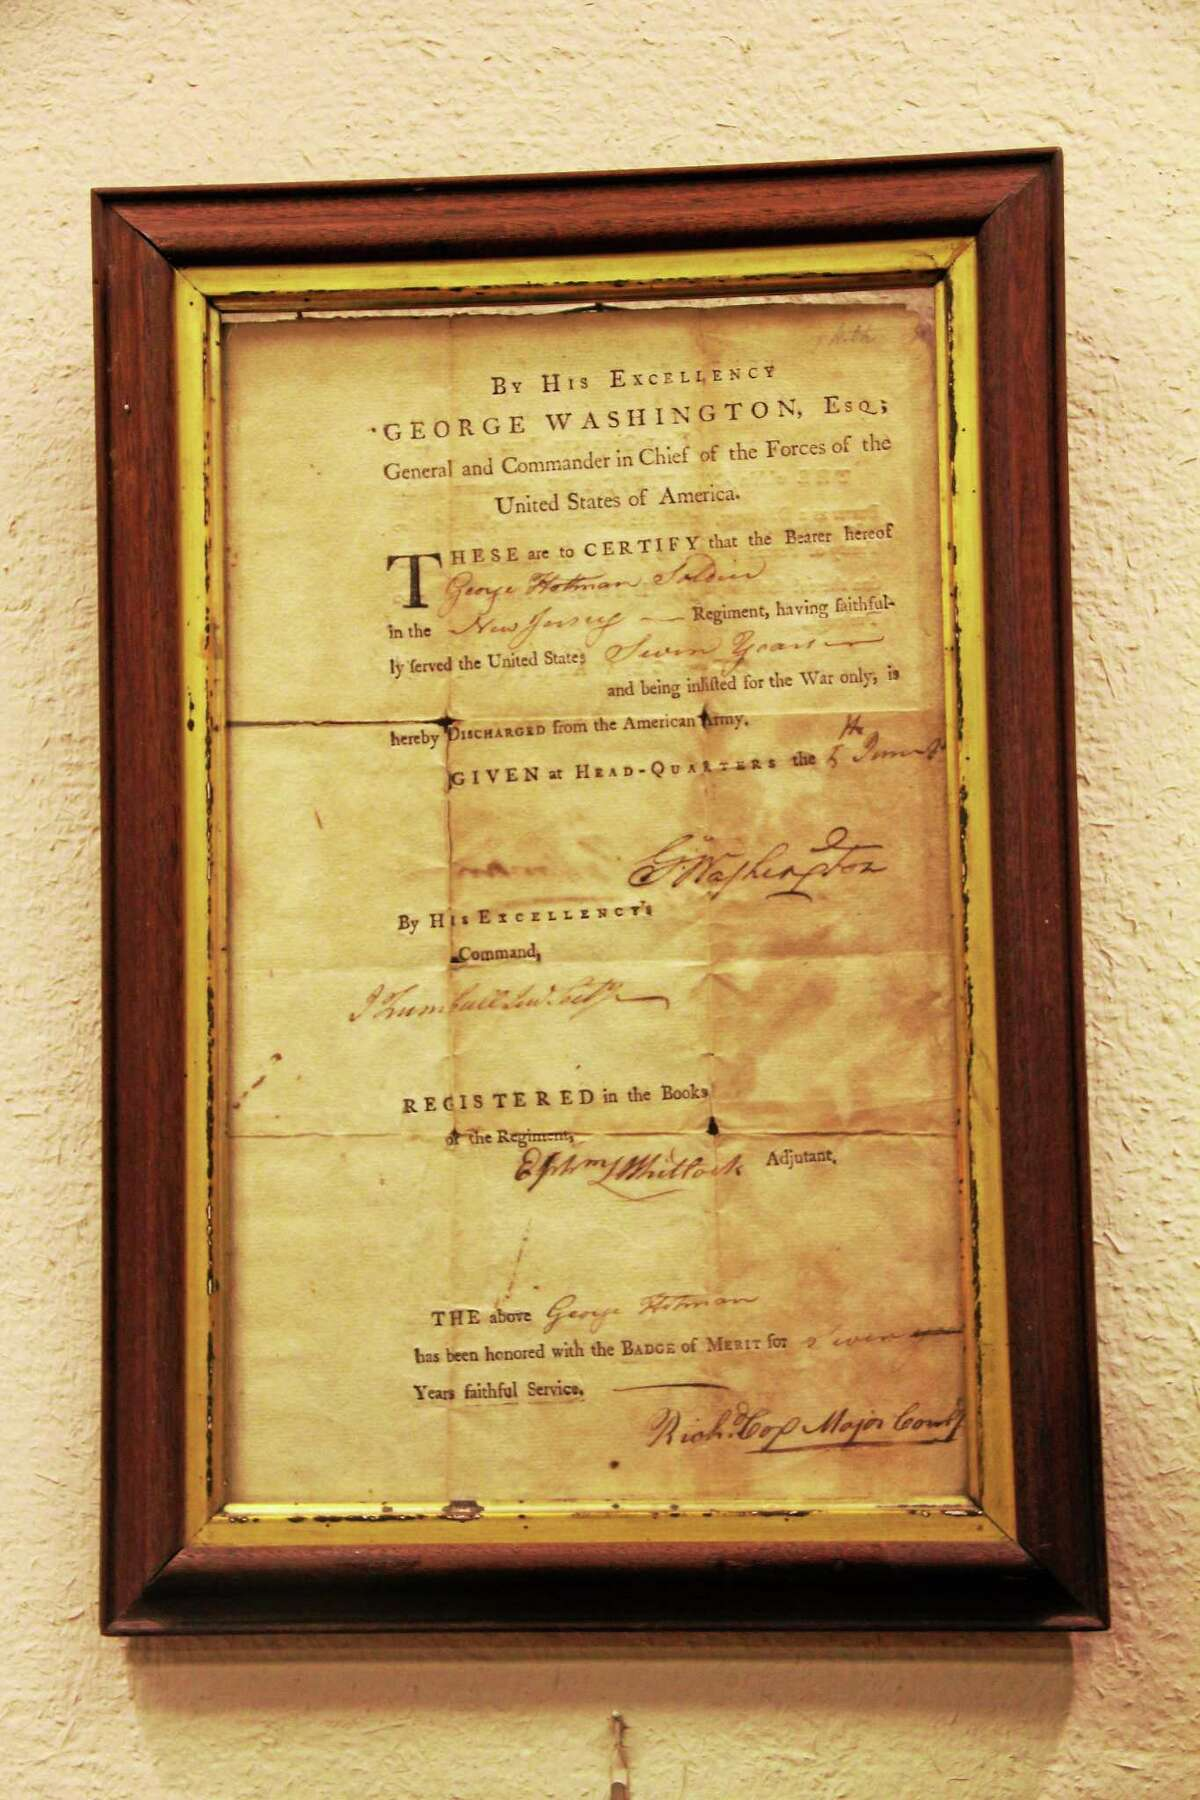 The Army discharge letter signed by George Washington, which hangs in the museum and program room of the Torrington Library, on Friday, Jan. 31, 2014. The piece is one of the most historically significant artifacts housed by the library.